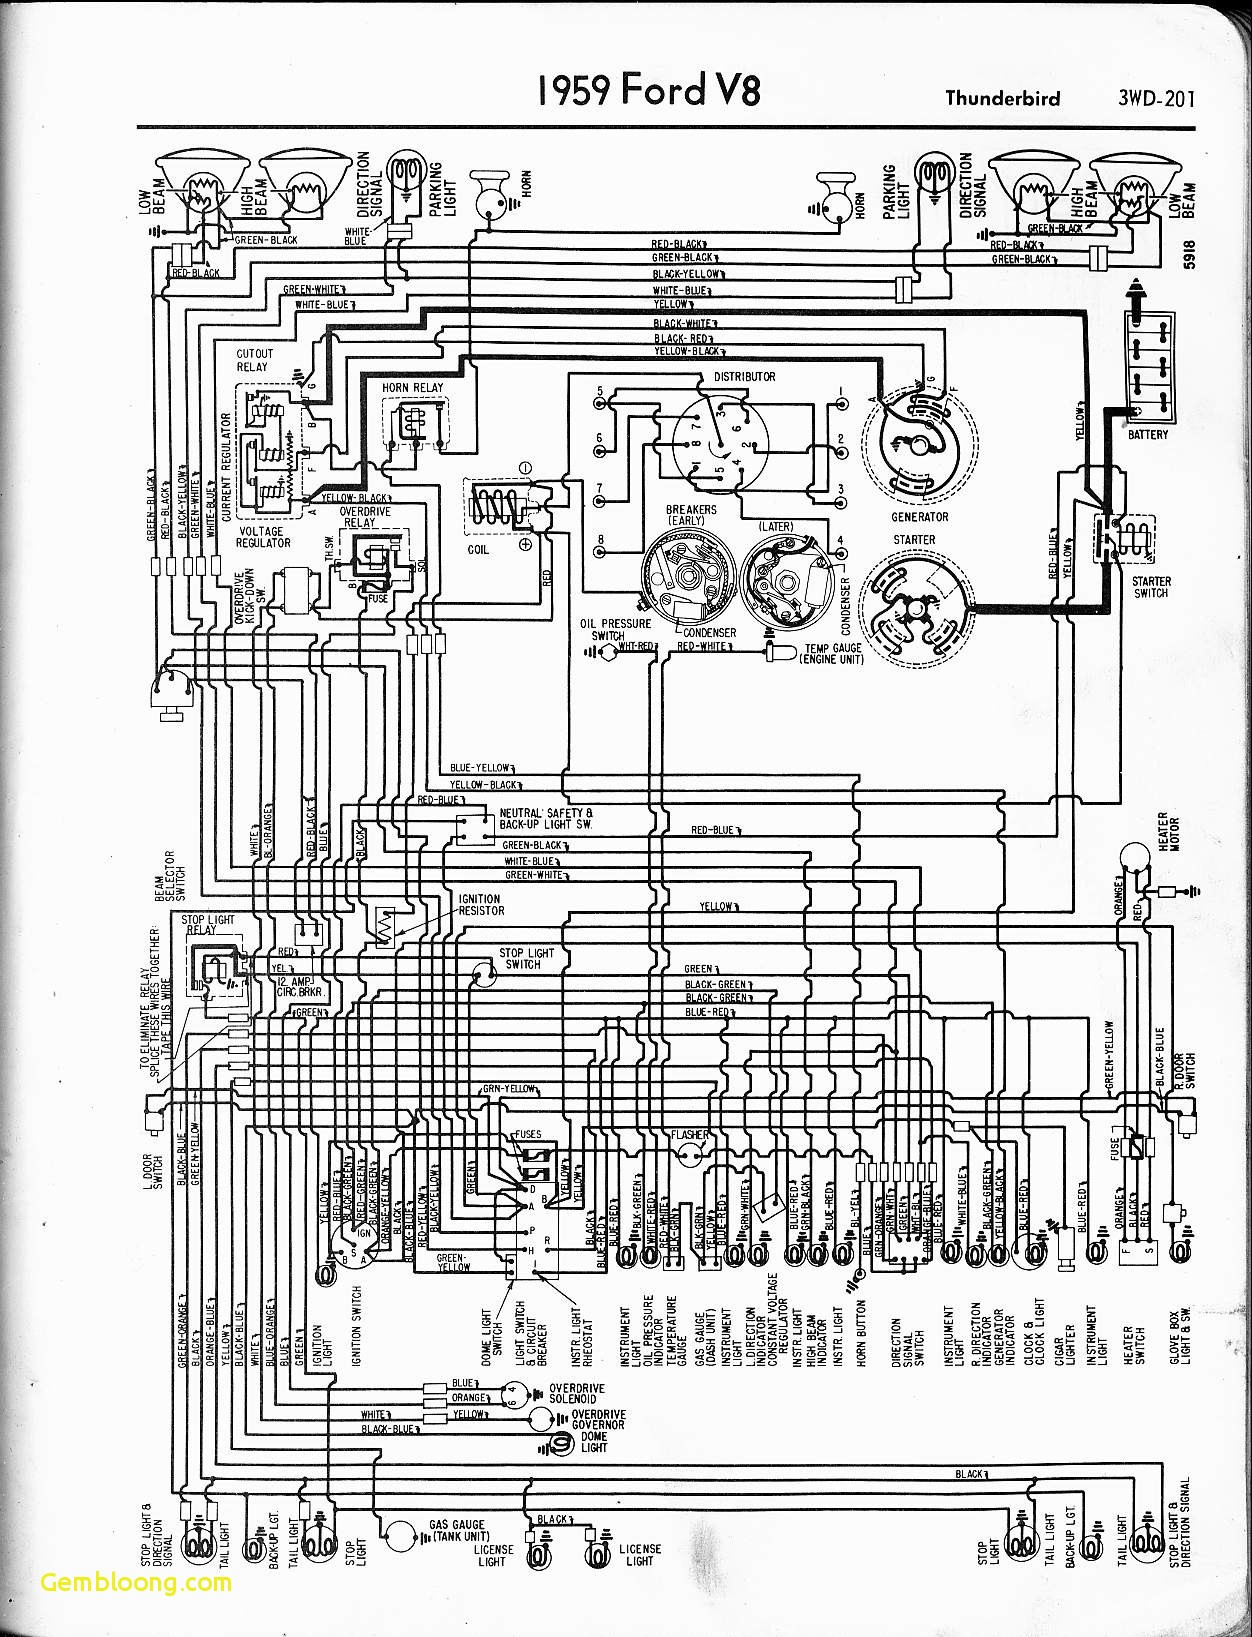 Electrical Diagrams for Cars Download ford Trucks Wiring Diagrams ford F150 Wiring Diagrams Best Of Electrical Diagrams for Cars